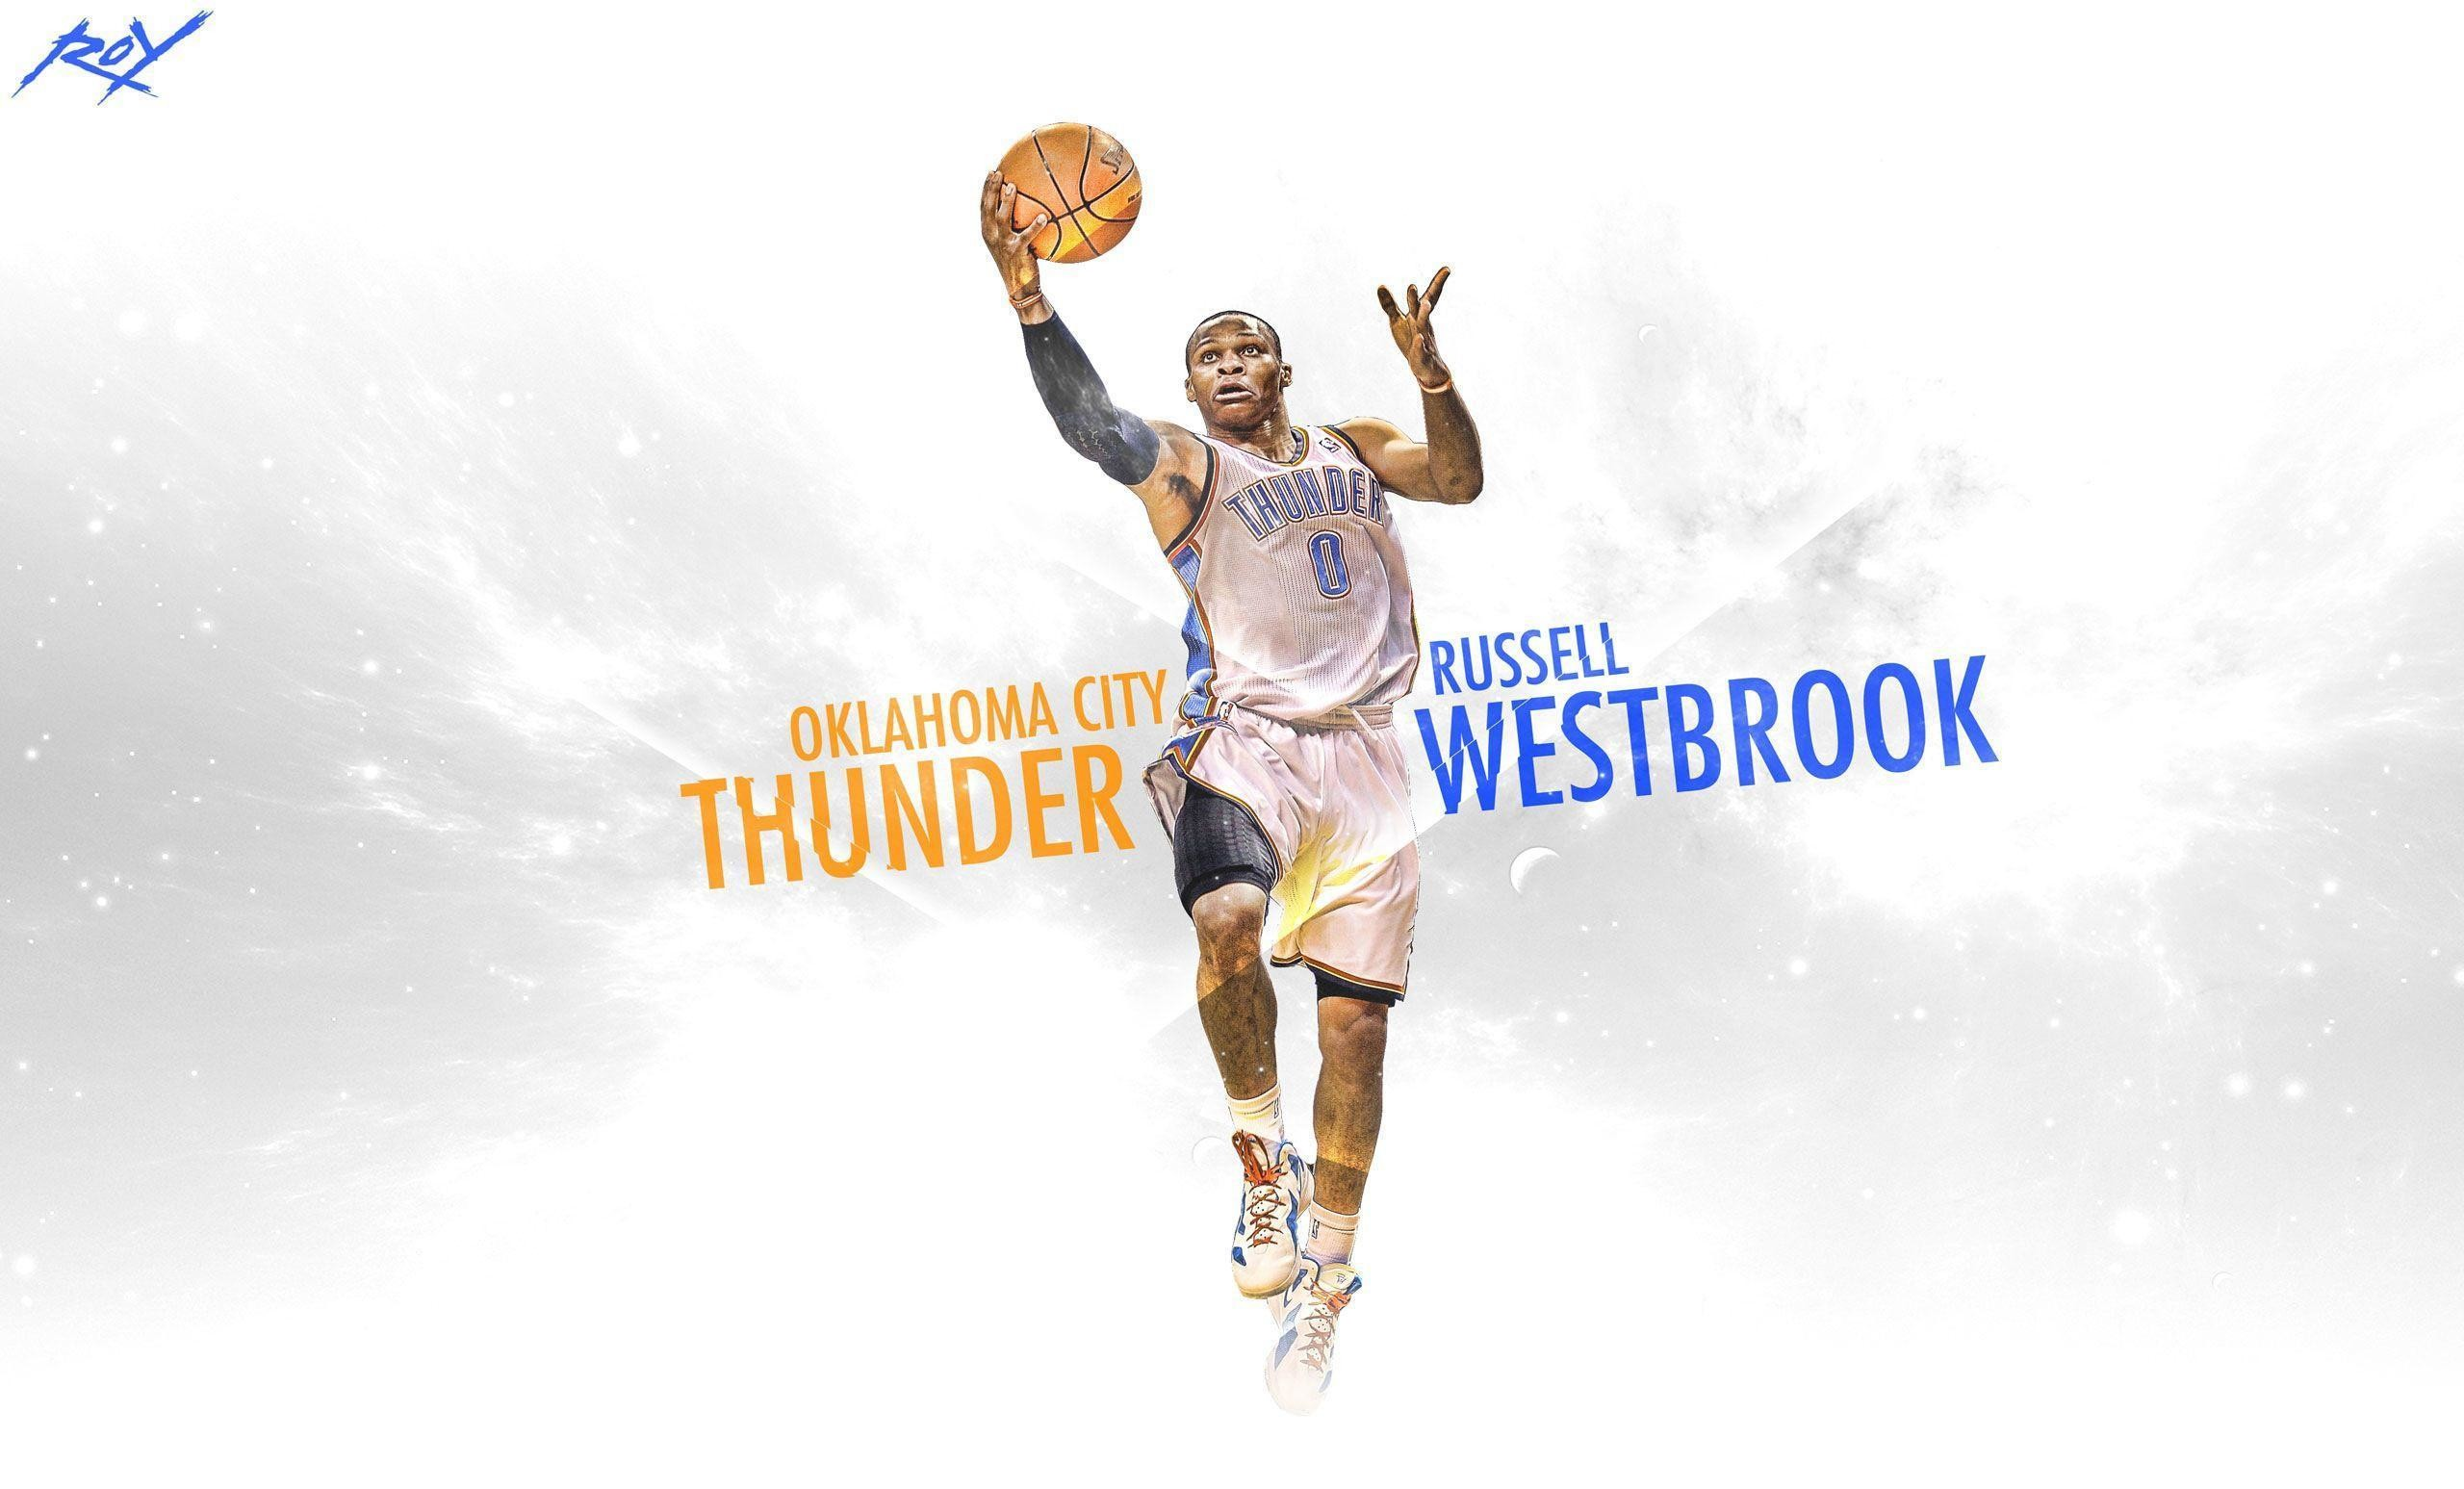 Russell Westbrook Wallpaper HD | HD Wallpapers, Backgrounds .